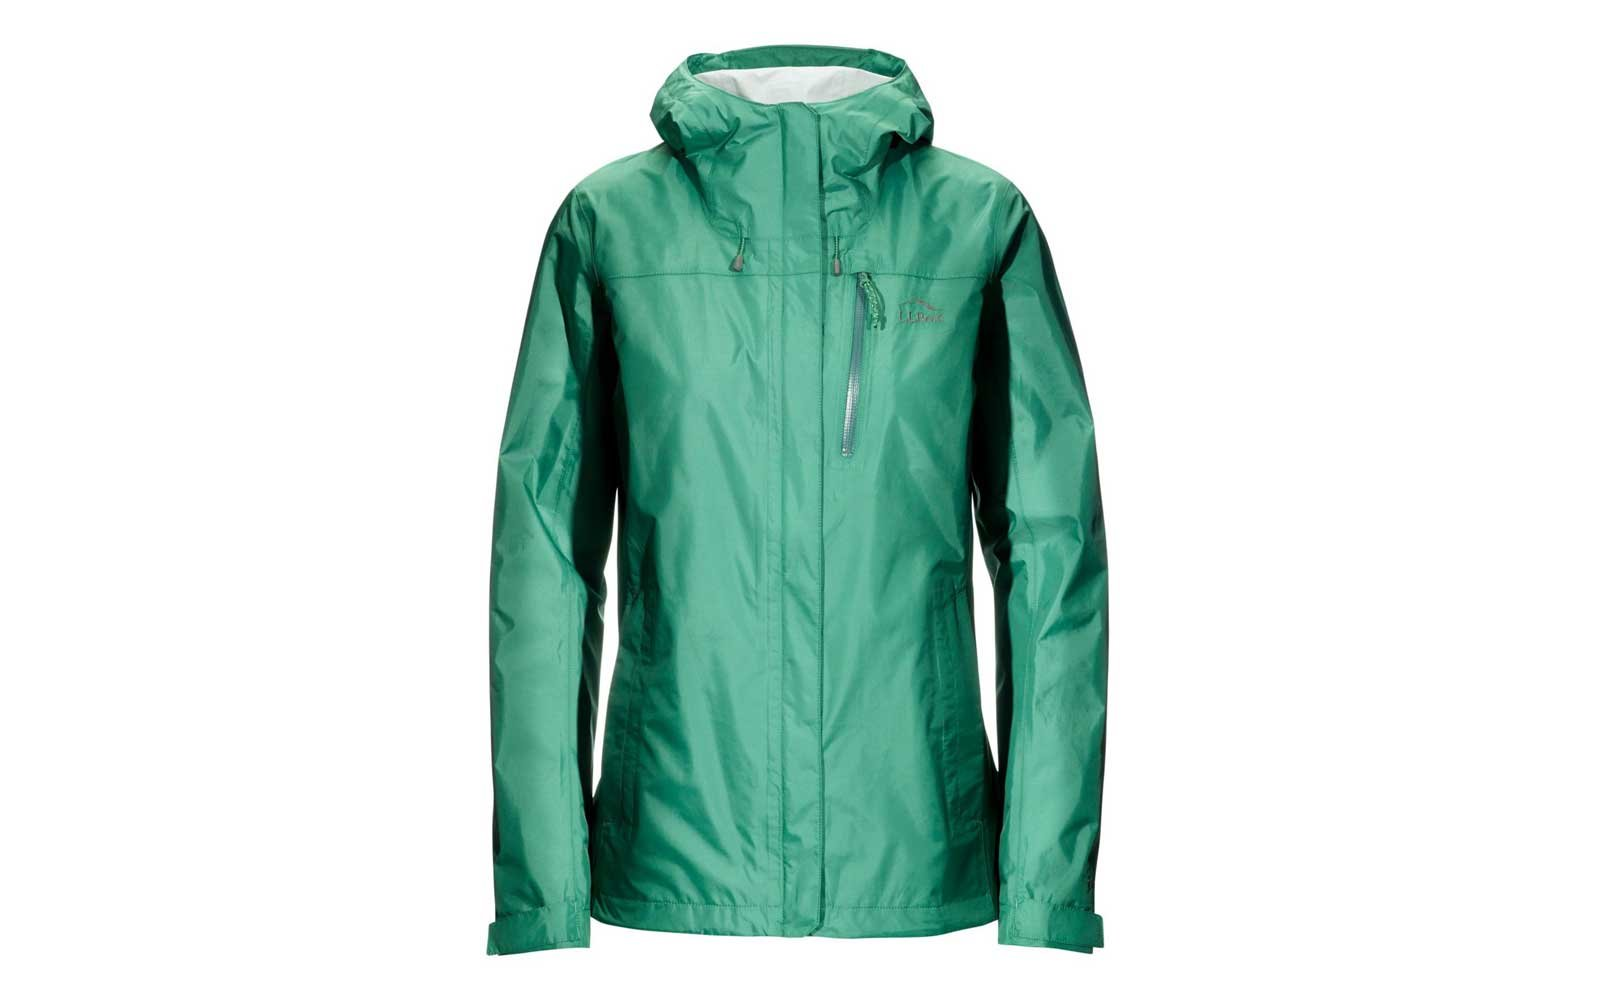 enjoy big discount 2019 professional great deals The Best Packable Rain Jackets for Men and Women | Travel + ...